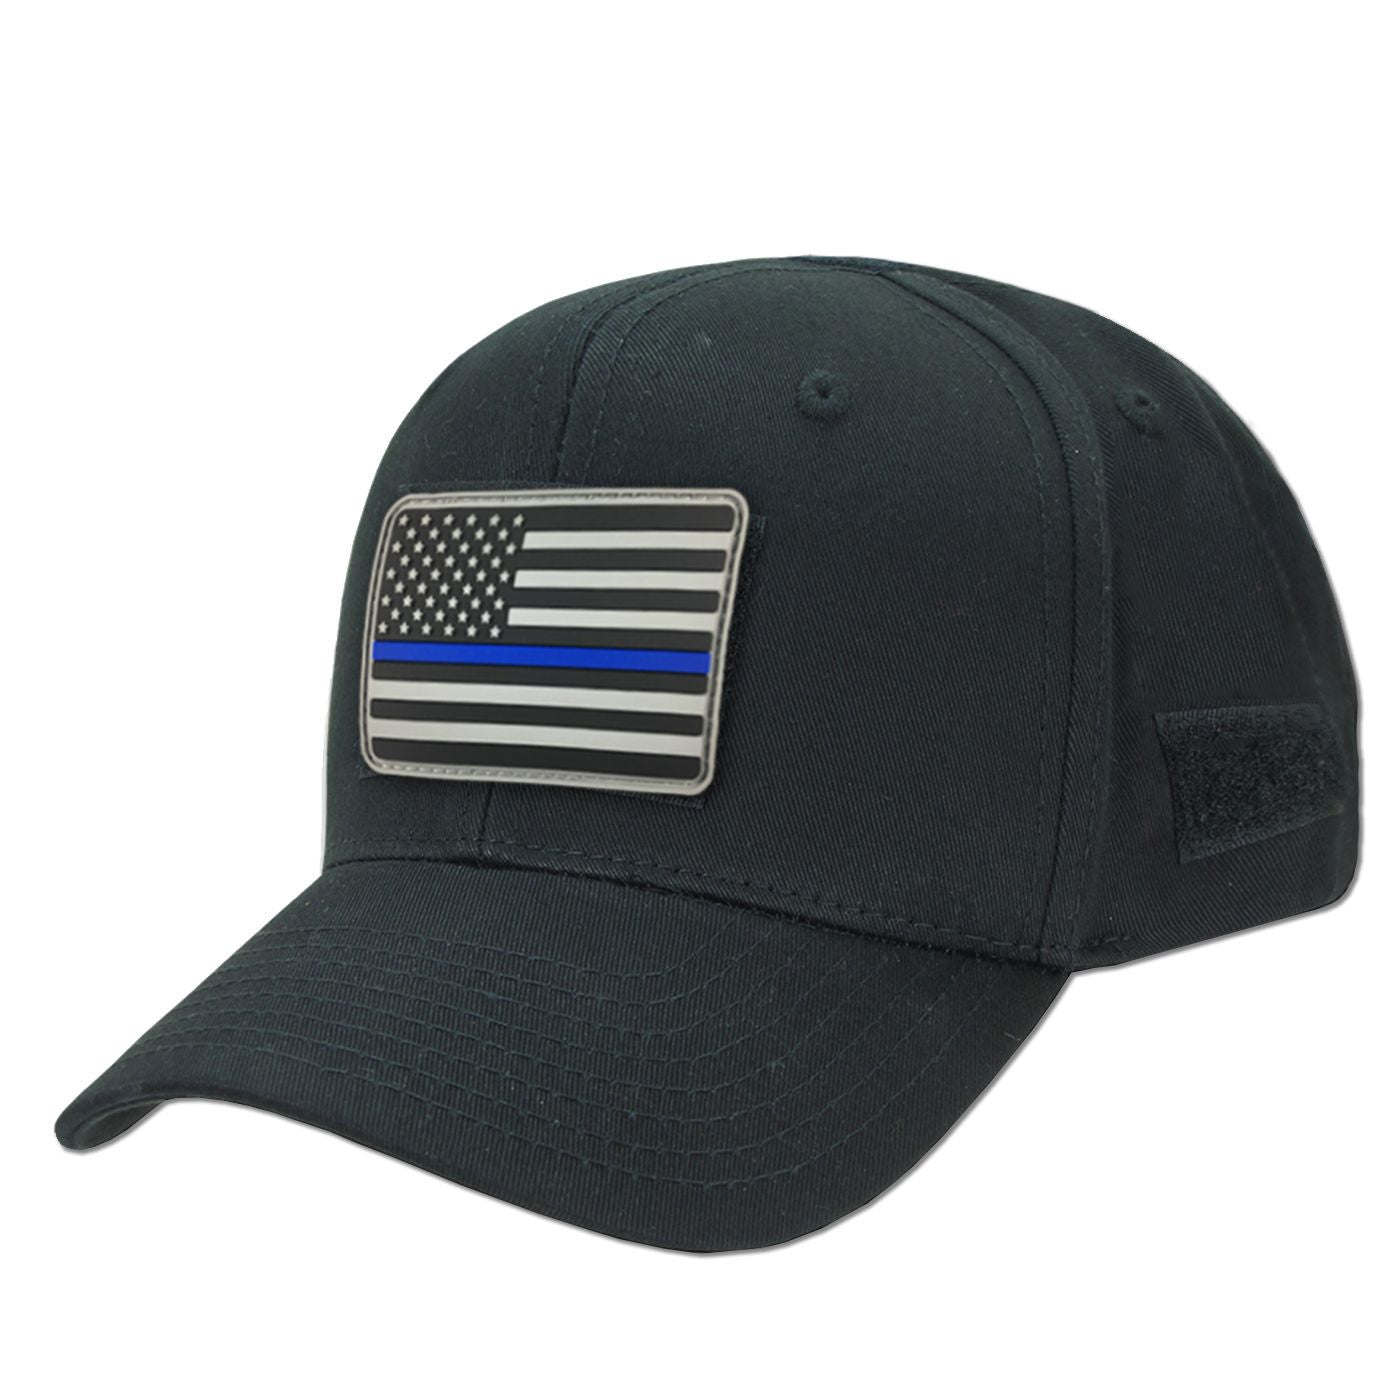 Black Operator s Hat   Thin Blue Line Morale Patch - Thin Blue Line USA 6d263f72edc